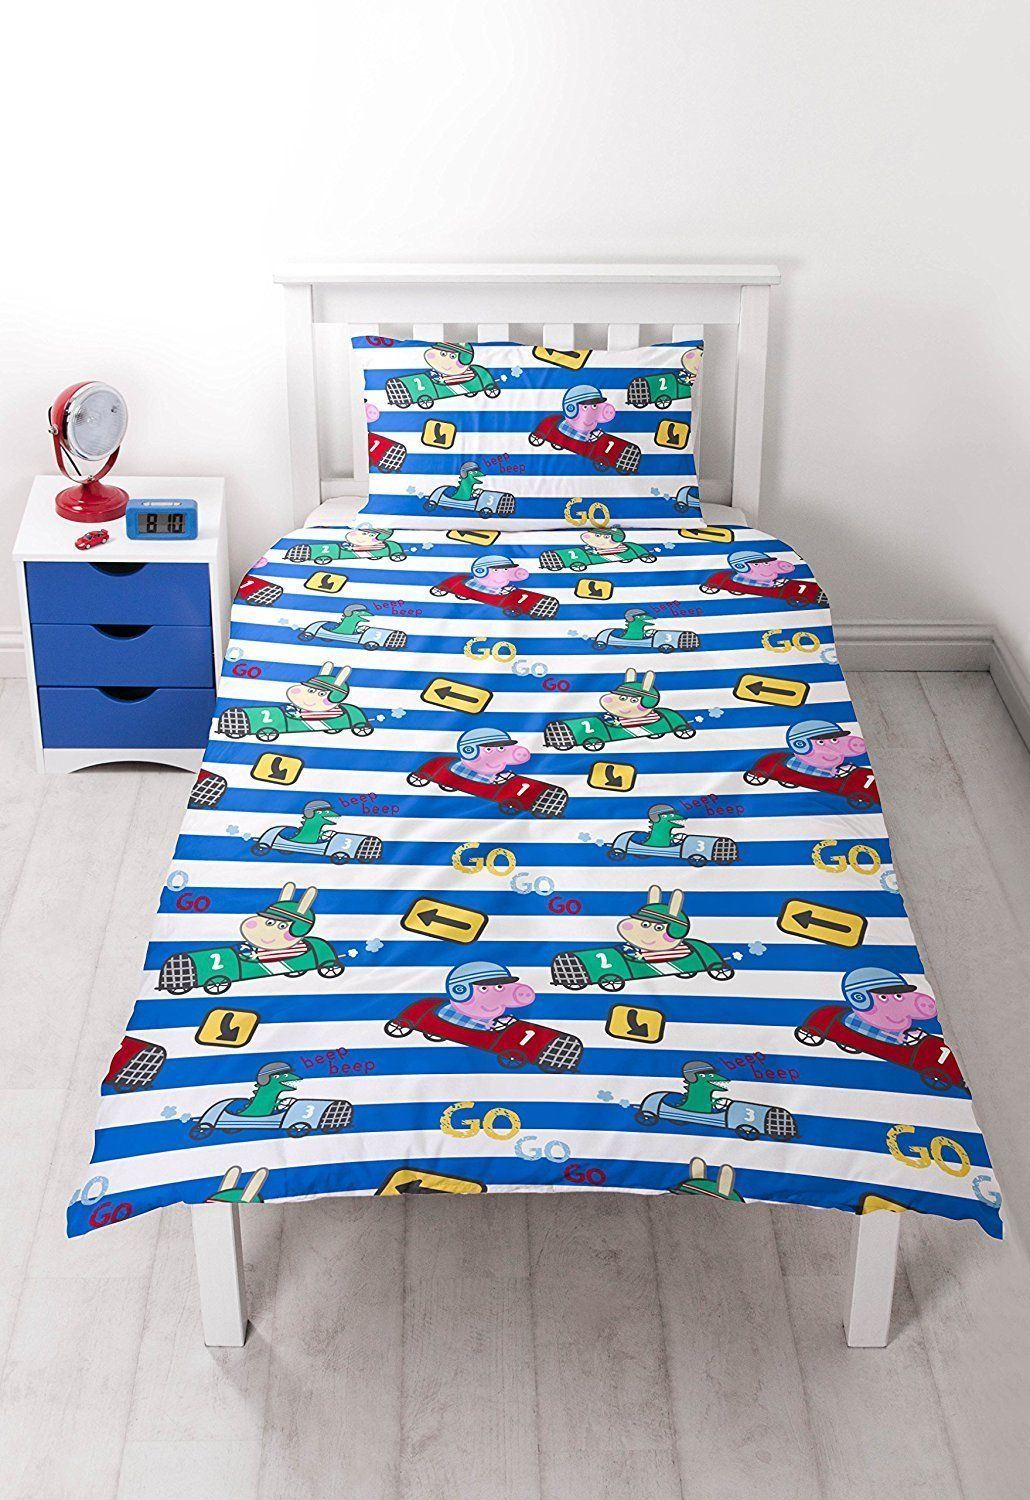 NEW-PEPPA-PIG-GEORGE-Bedding-Duvet-Quilt-Cover-Bed-Set-PIRATES-DINOSAUR-TRAIN-UK thumbnail 7